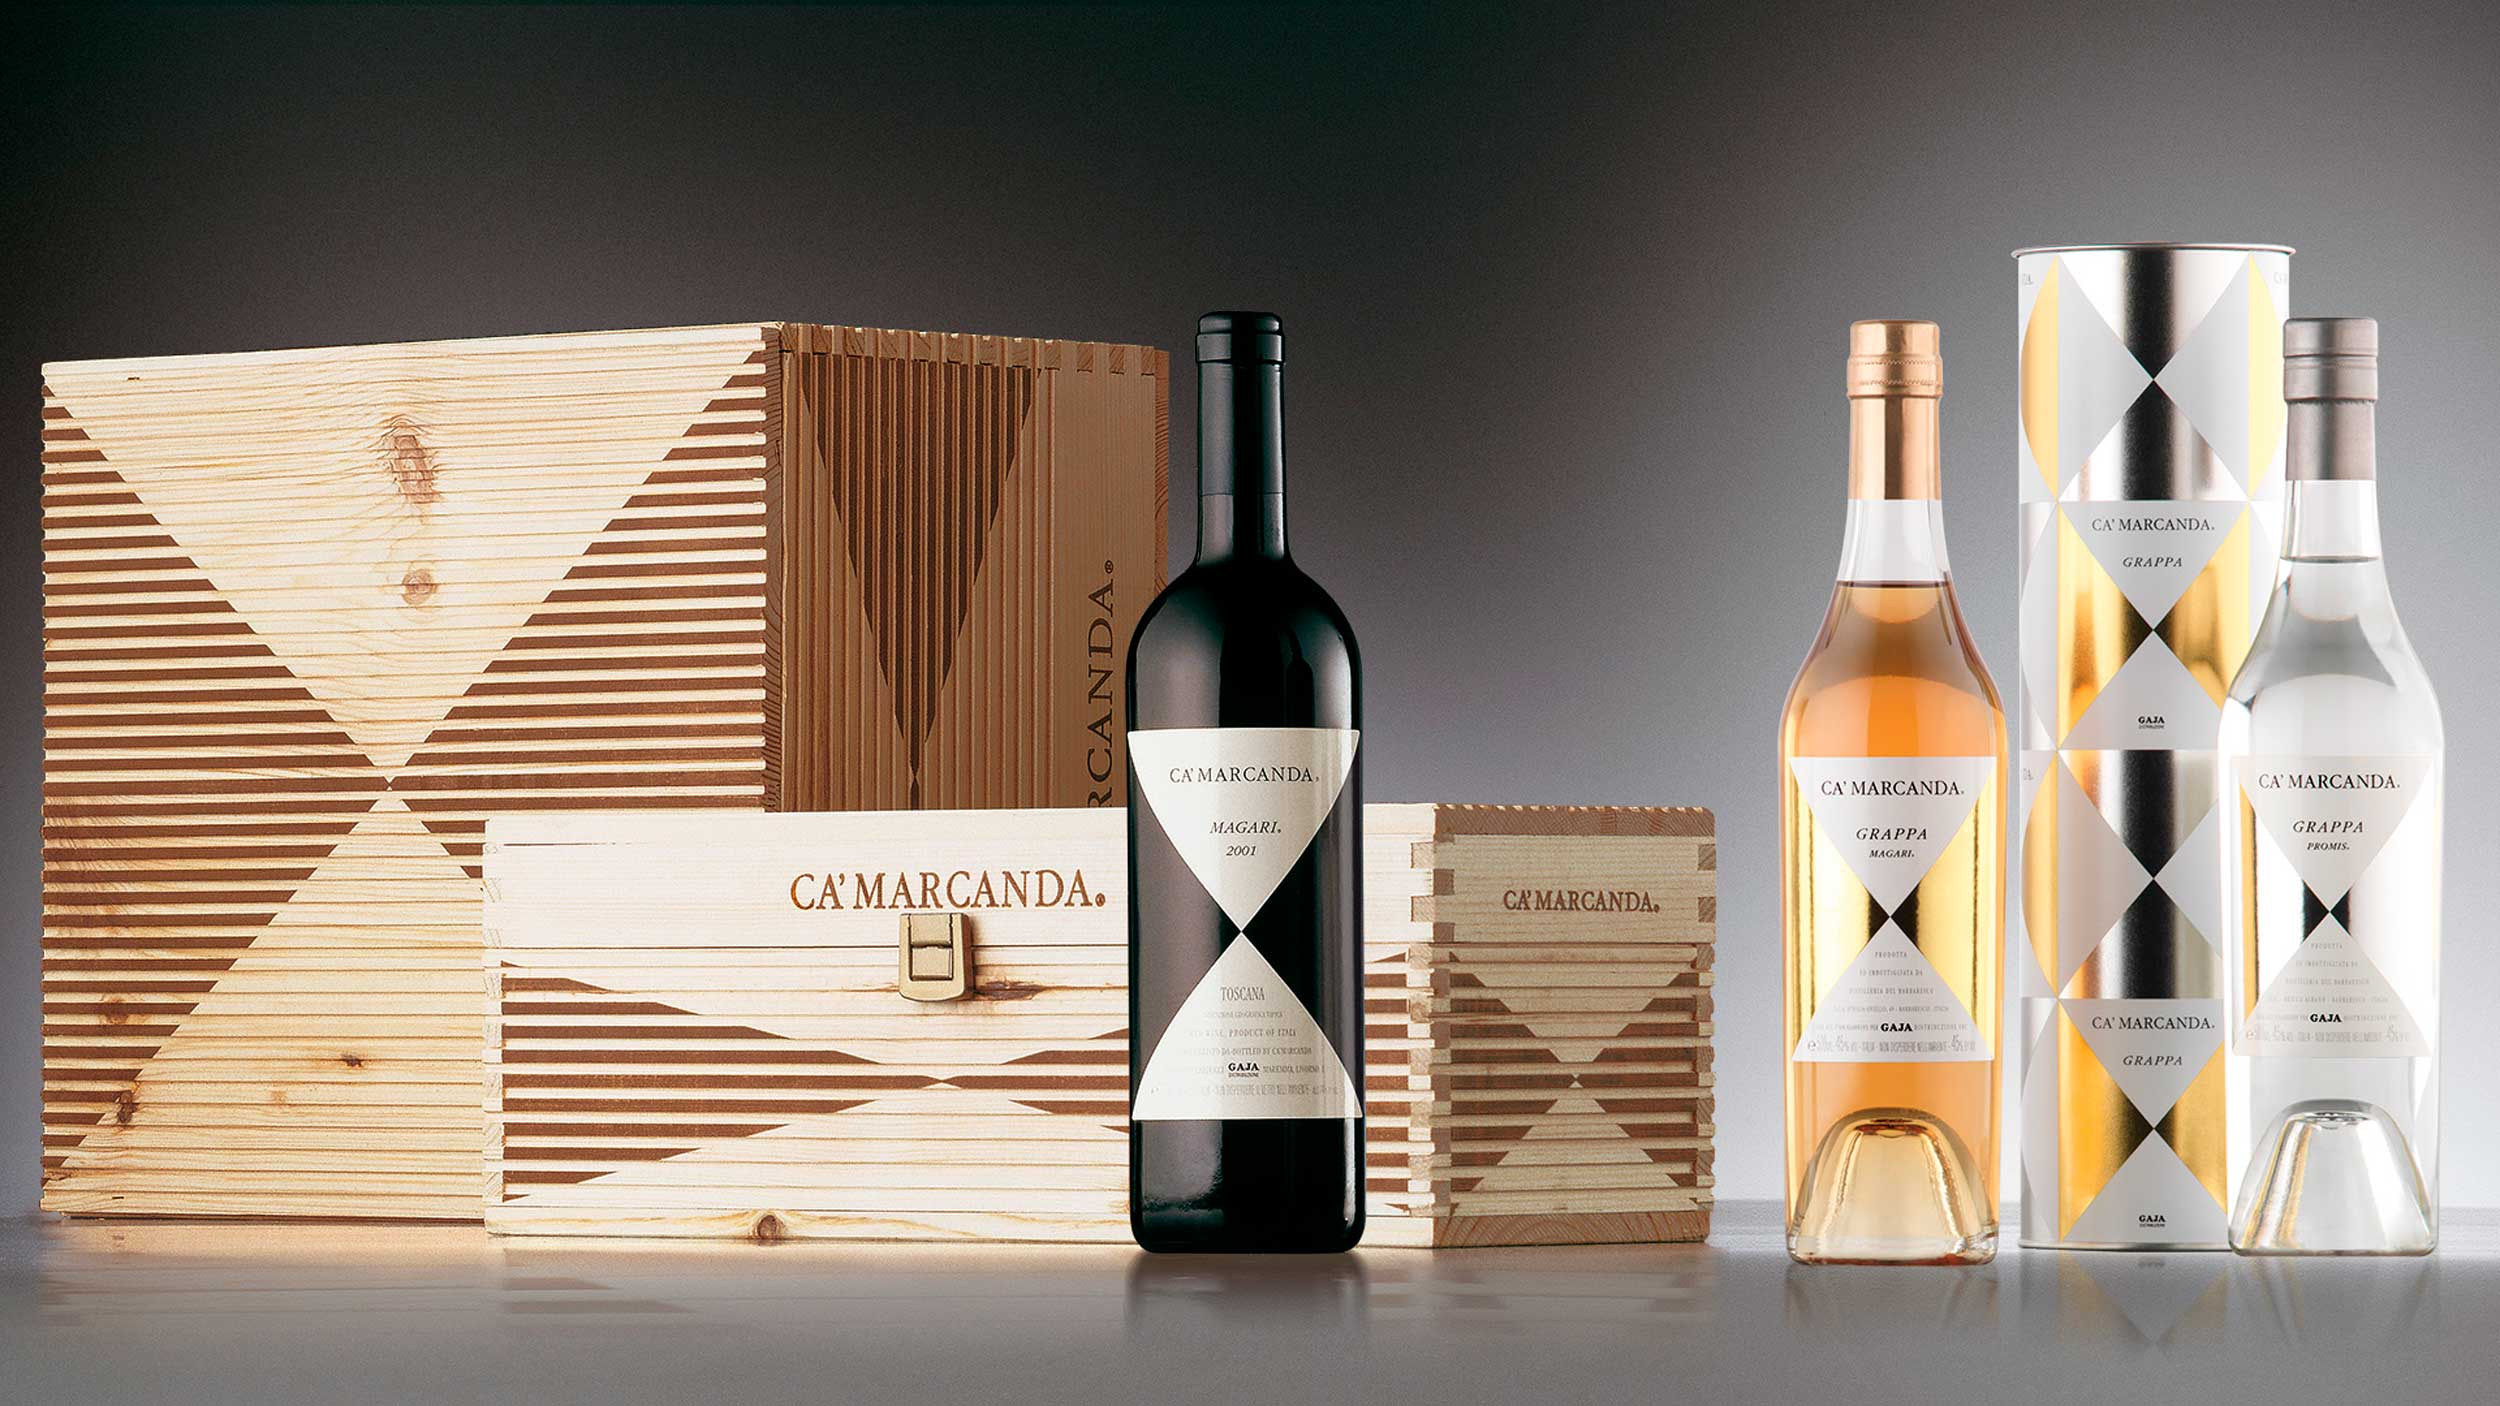 Gaja Ca Marcanda secondary packaging